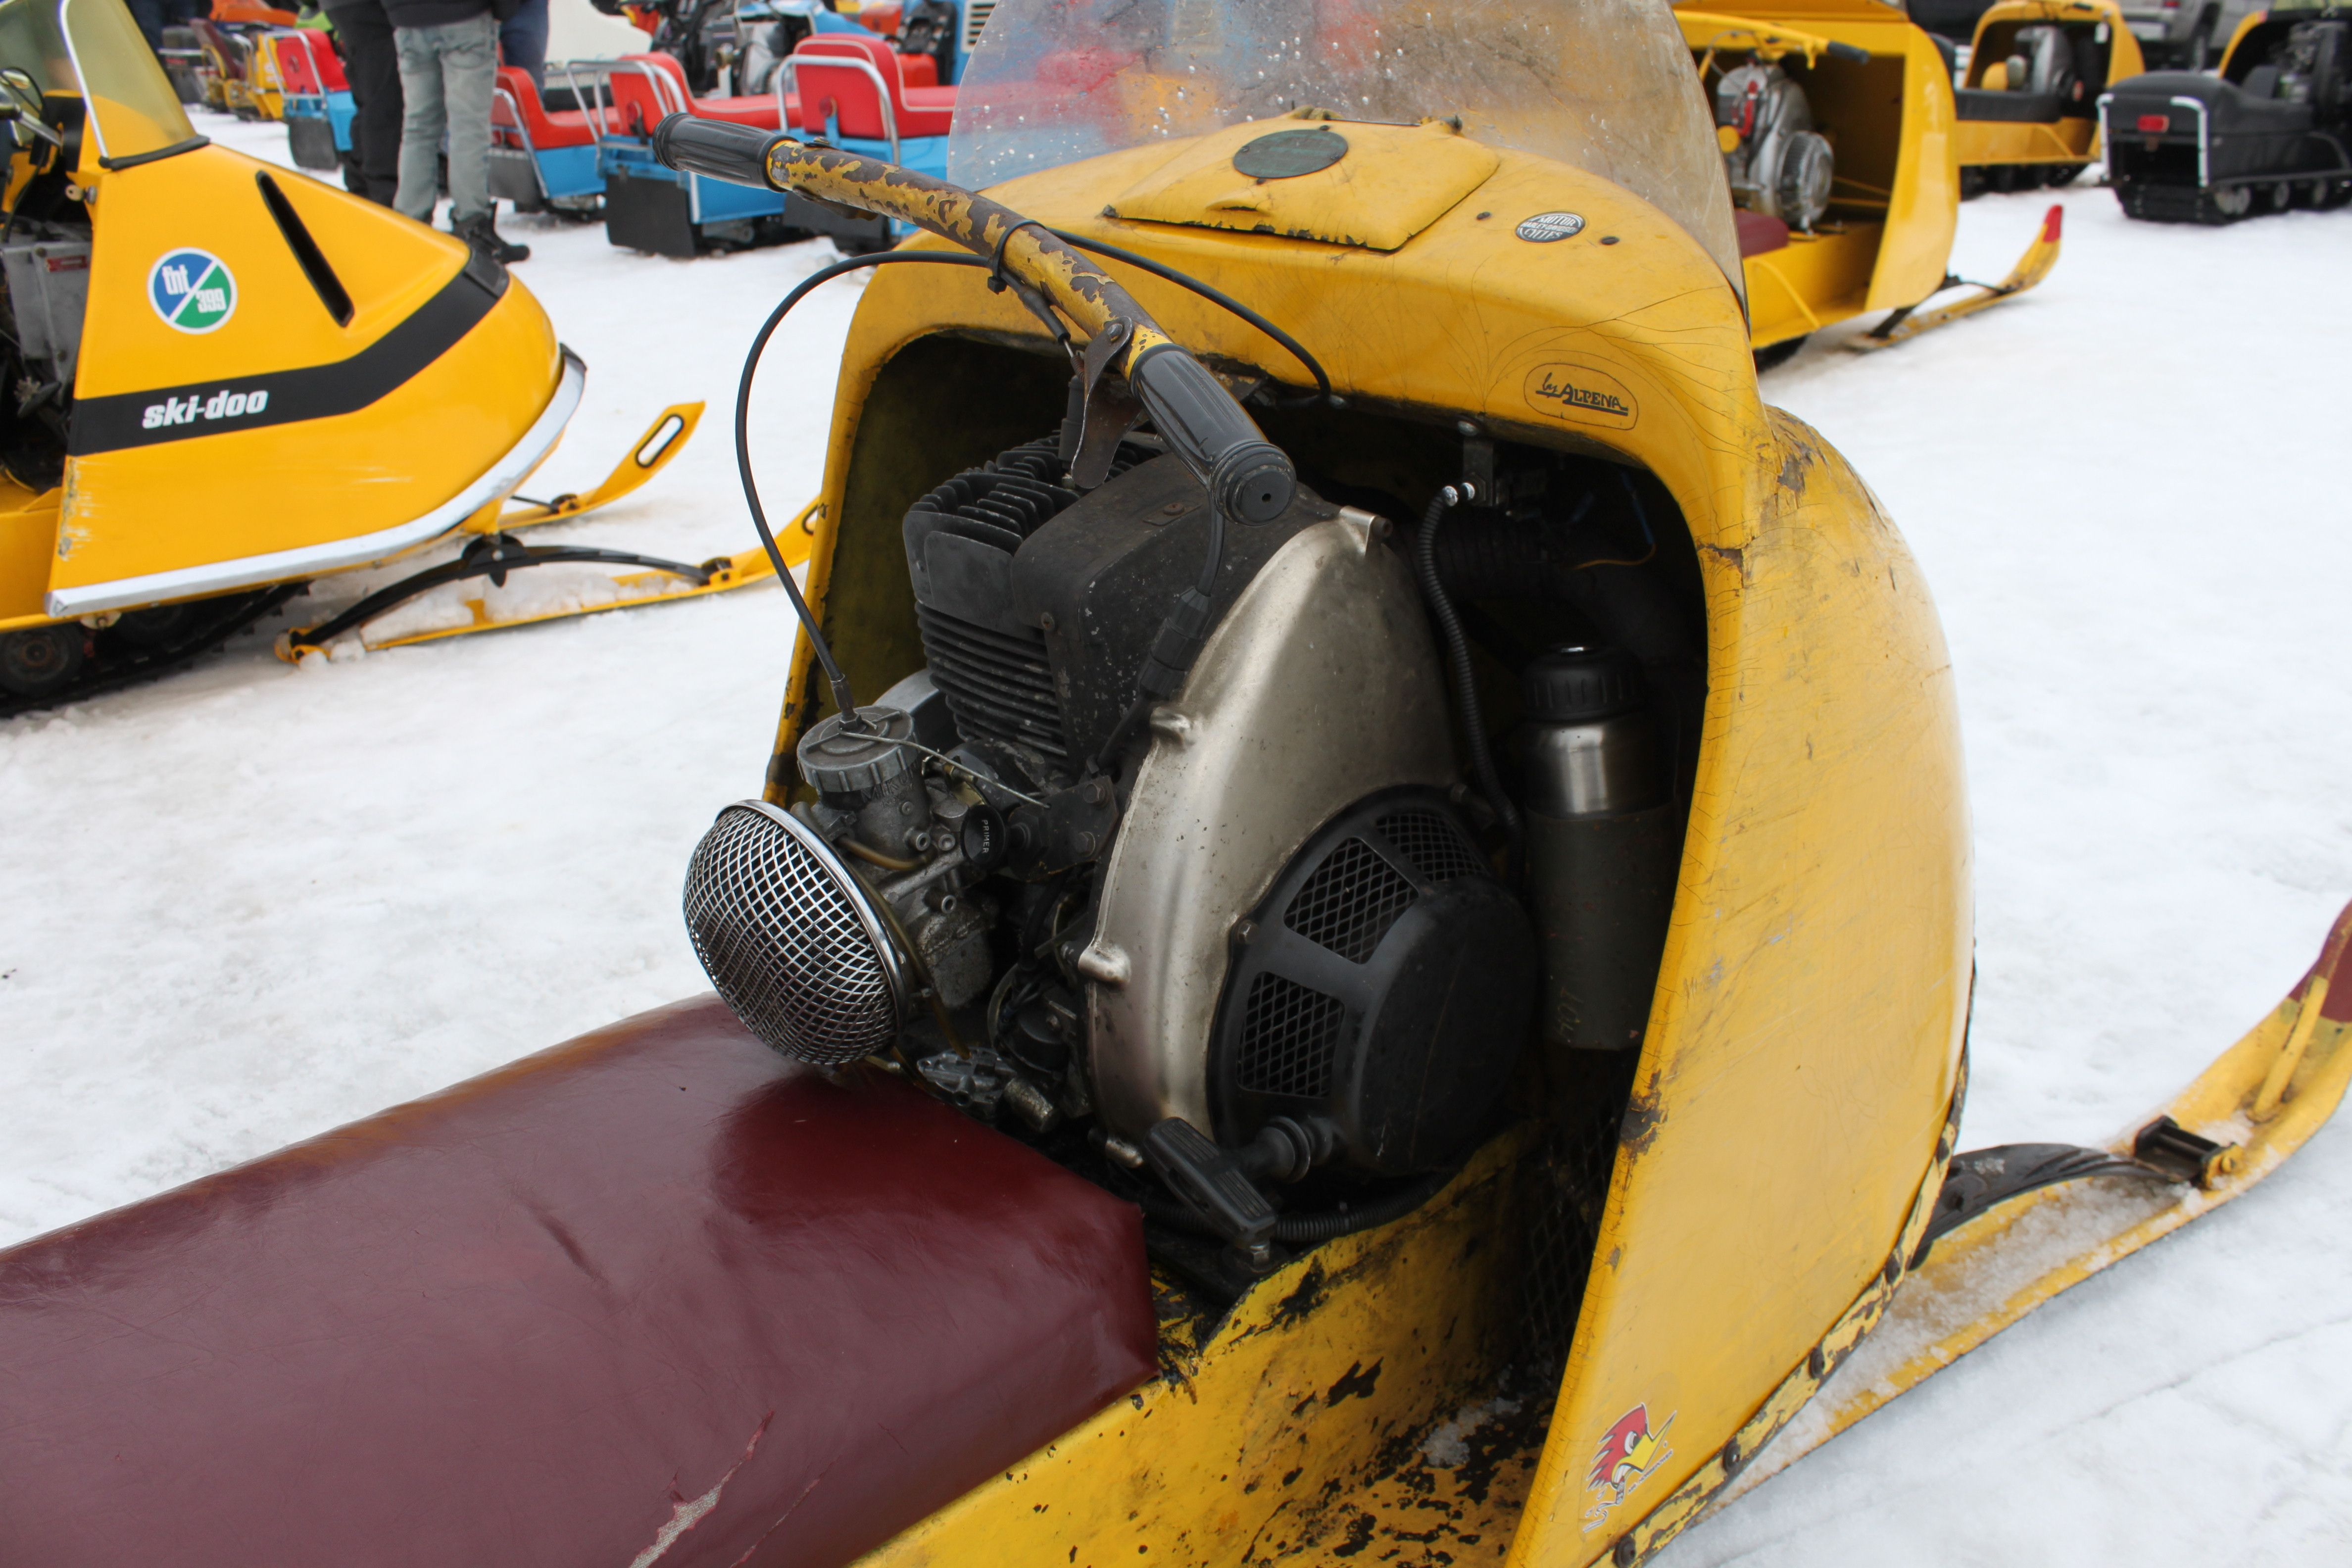 Antique snow machines image by Grant May   Vintage sled ...